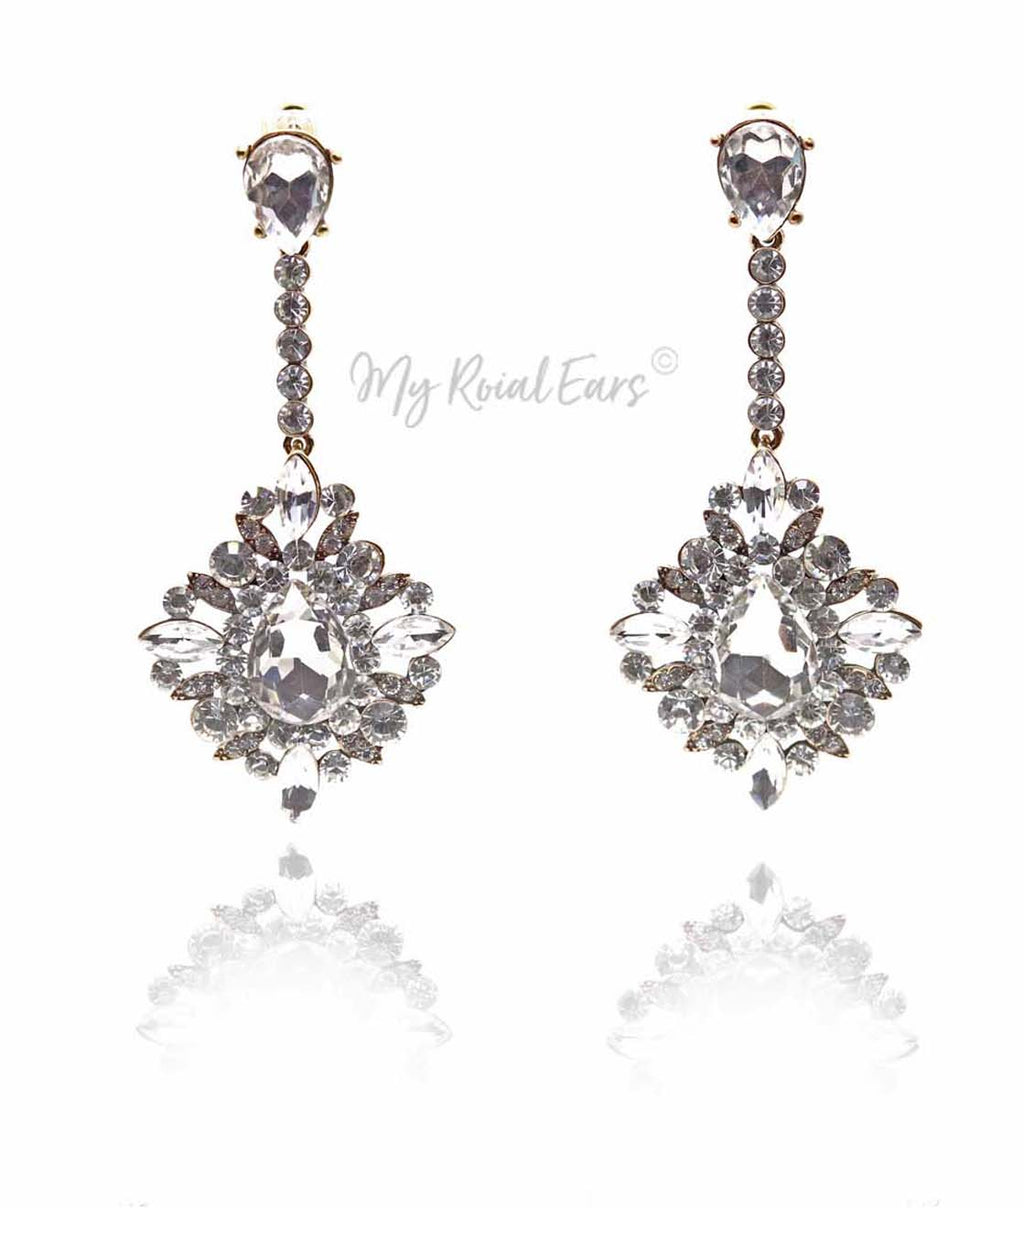 Q.DIANA- vintage crystal statement earrings - My Roial Ears LTD